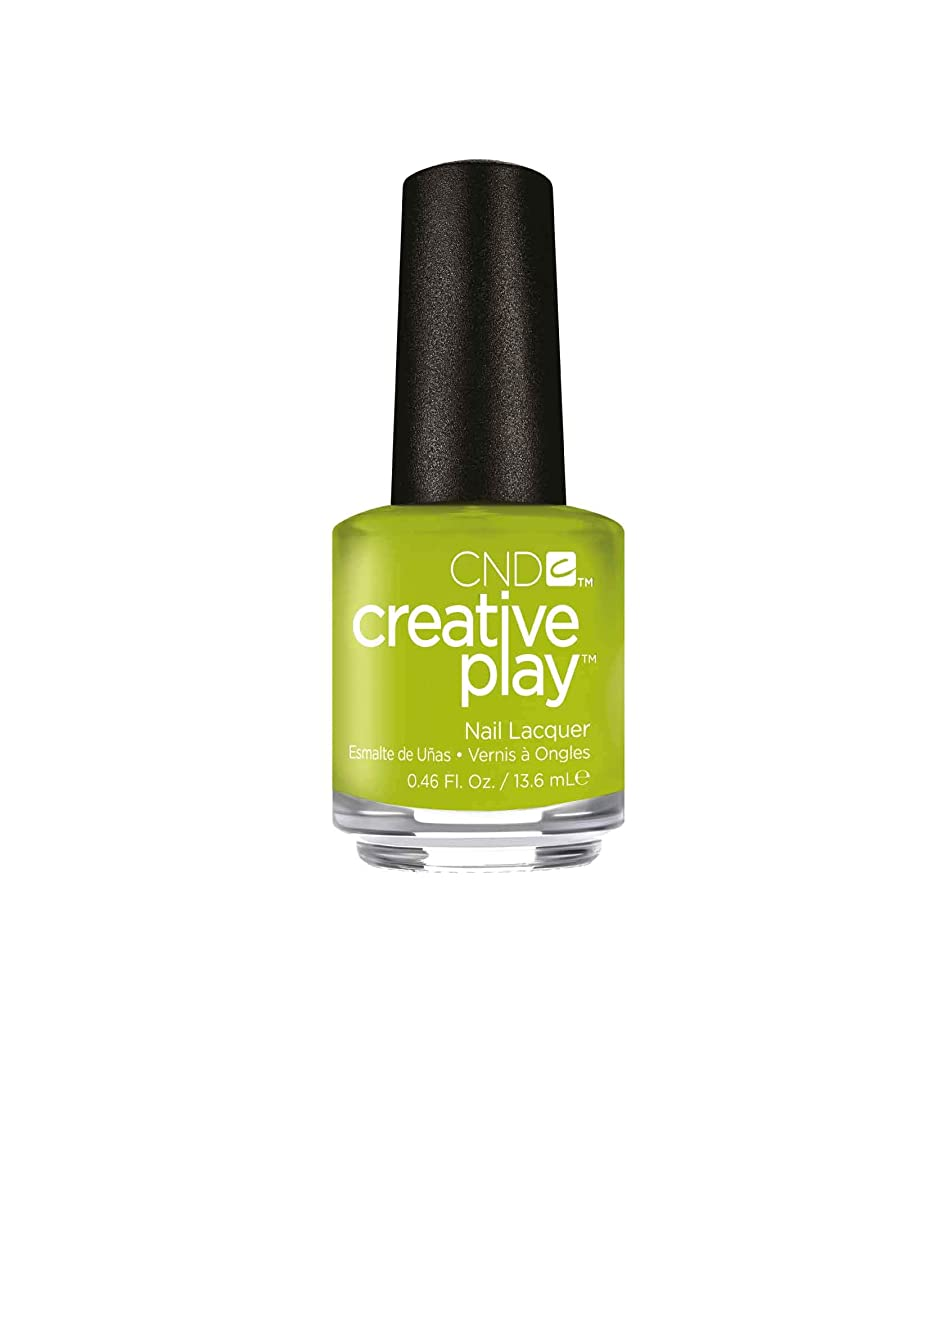 心のこもったカビオペレーターCND Creative Play Lacquer - Toe the Lime - 0.46oz / 13.6ml